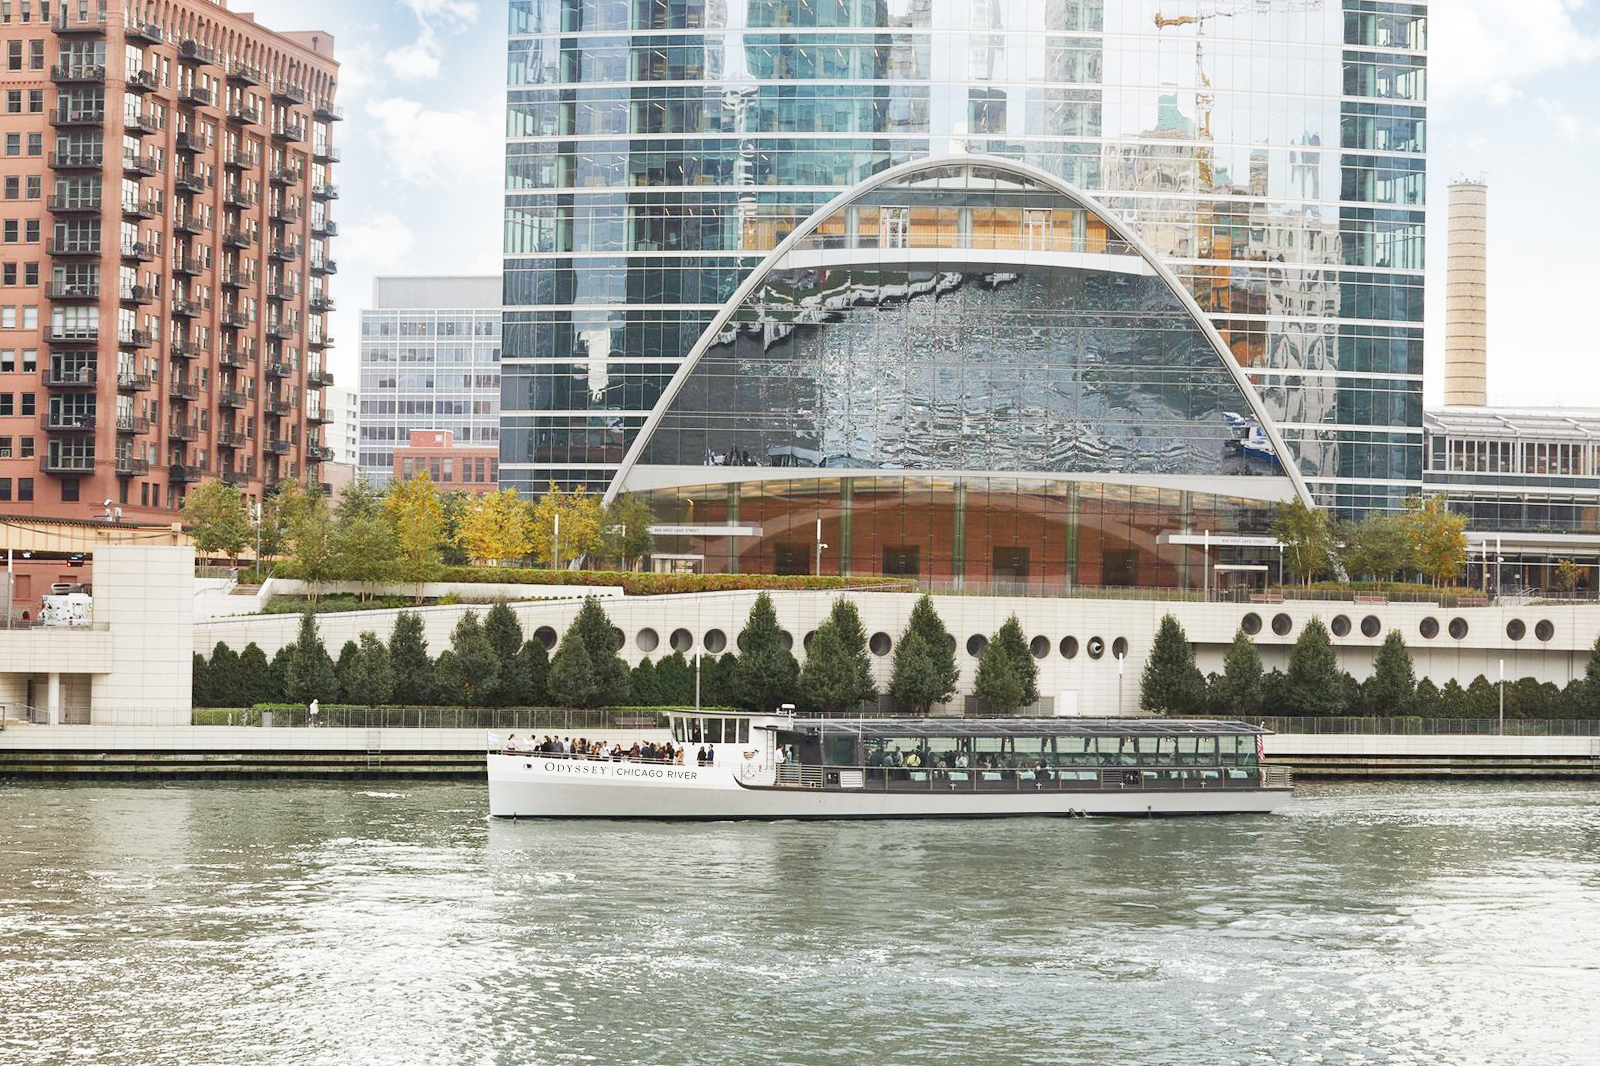 Odyssey Chicago River | The Magnificent Mile